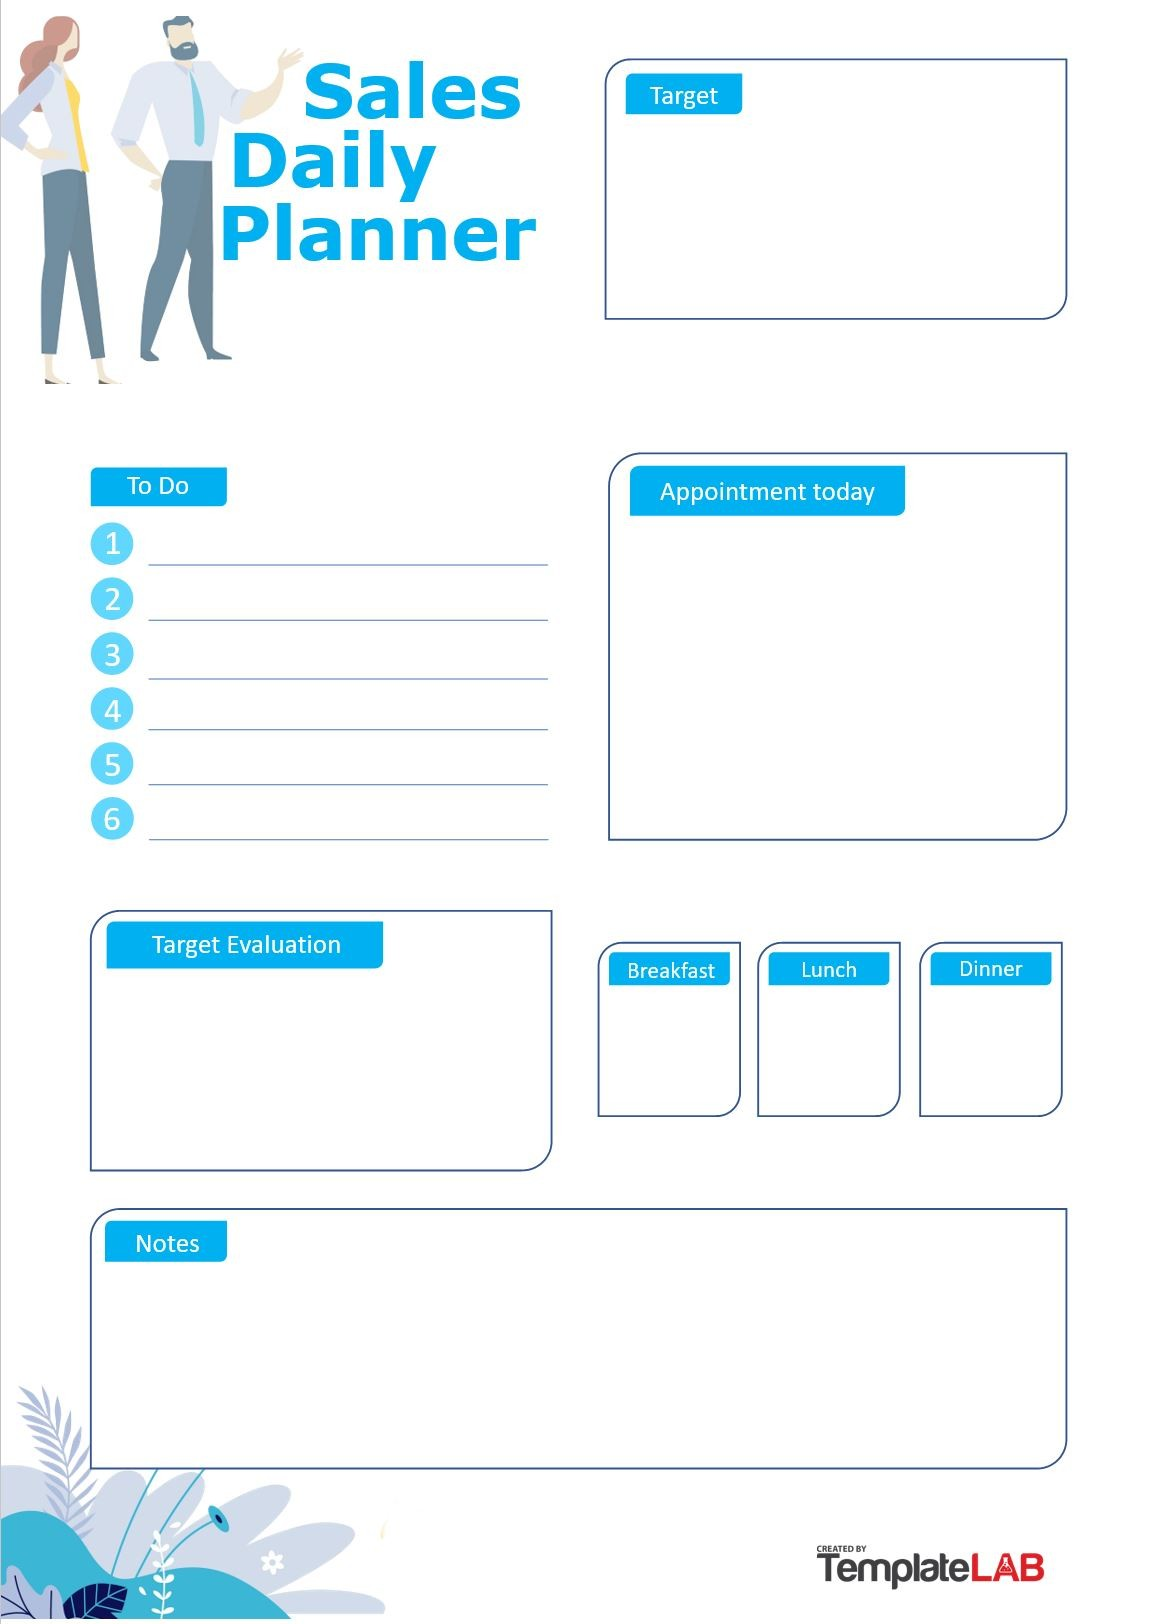 Free Sales Daily Planner